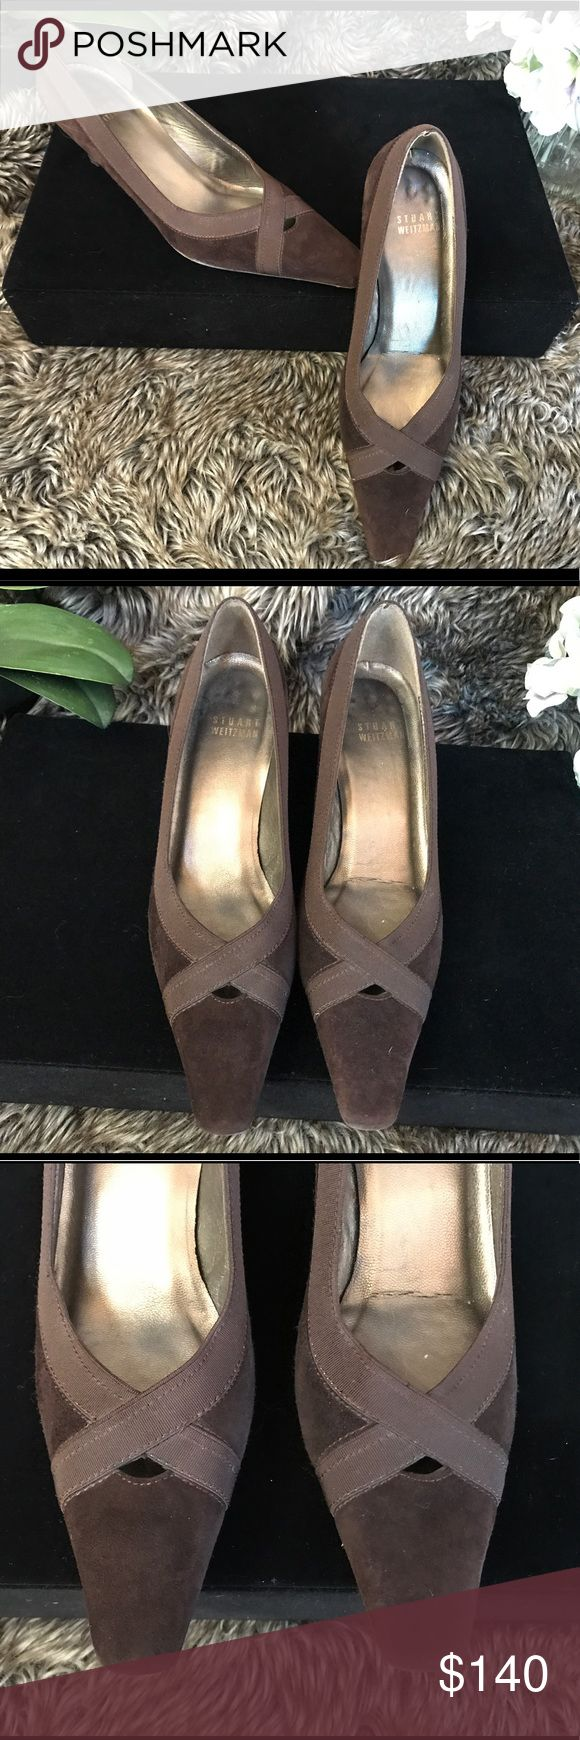 "EUC Stuart Weitzman Chocolate Suede Kitten Heels Anything on the Suede in pics is lint from the stupid furry blanket.  Makes me crazy!  Rubber comfort soles, 2"" heels, grosgrain trim.  Near perfect condition with just slight fading to logo on insole and slight wear on soles. Stuart Weitzman Shoes Heels"